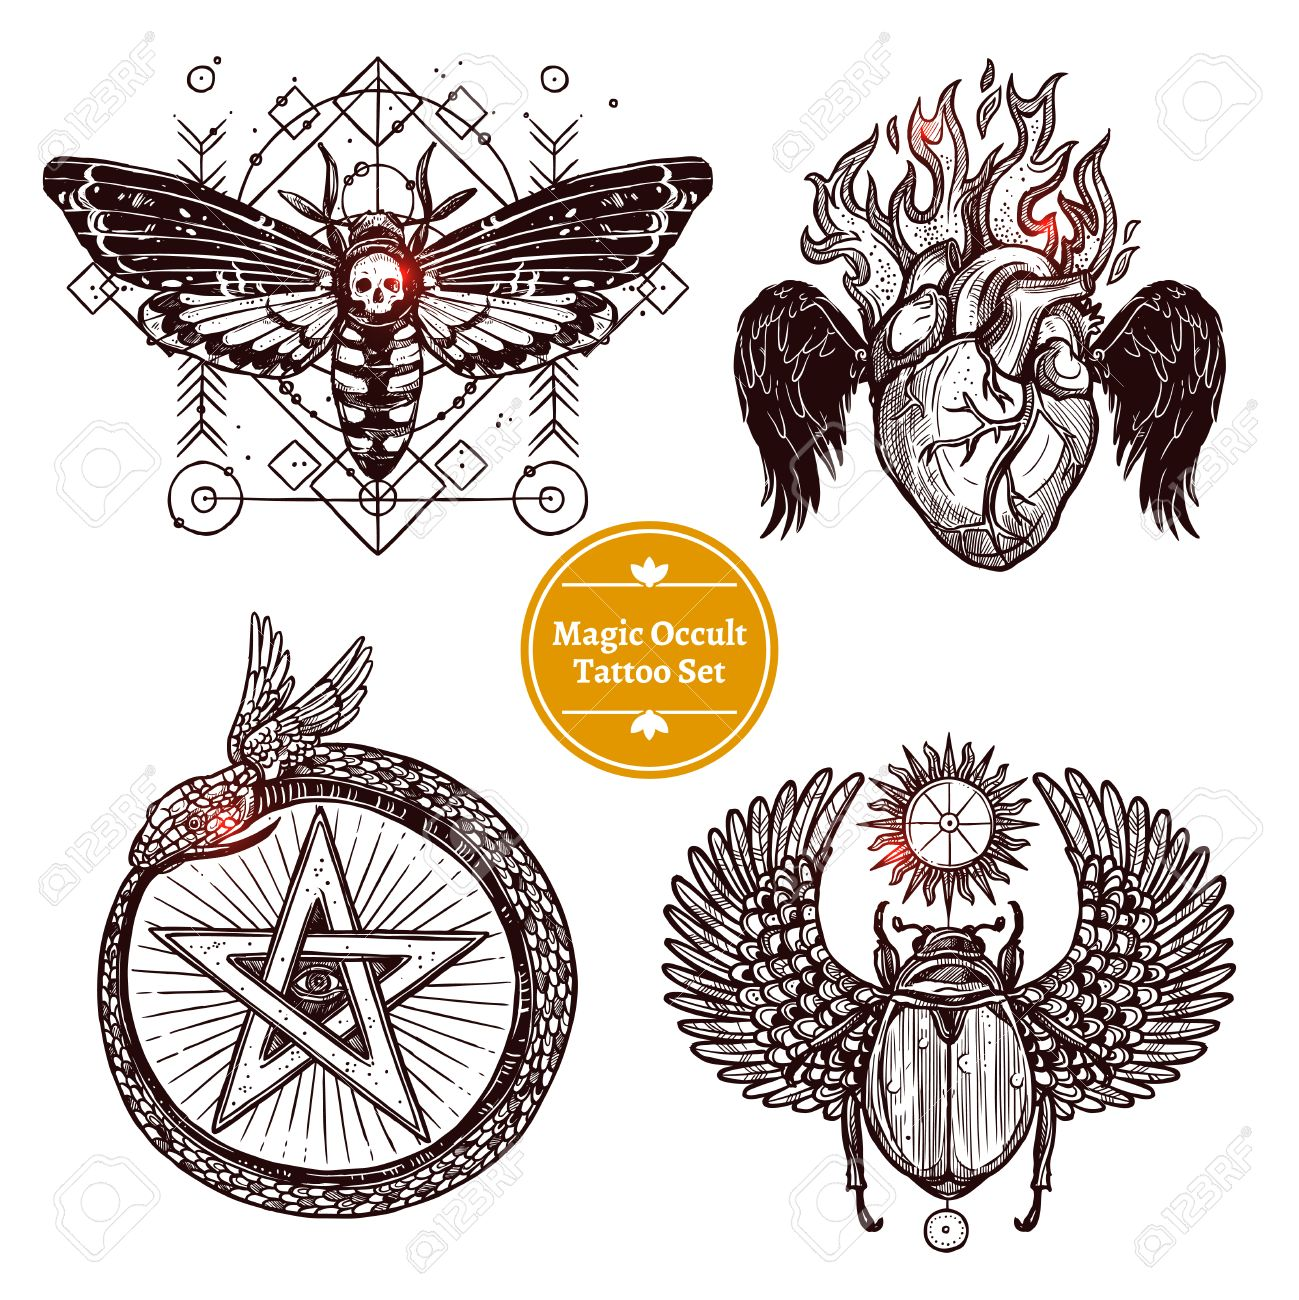 Occult tattoo sketch concept occult tattoo hand drawn set magic occult tattoo sketch concept occult tattoo hand drawn set magic modern tattoo illustration biocorpaavc Image collections